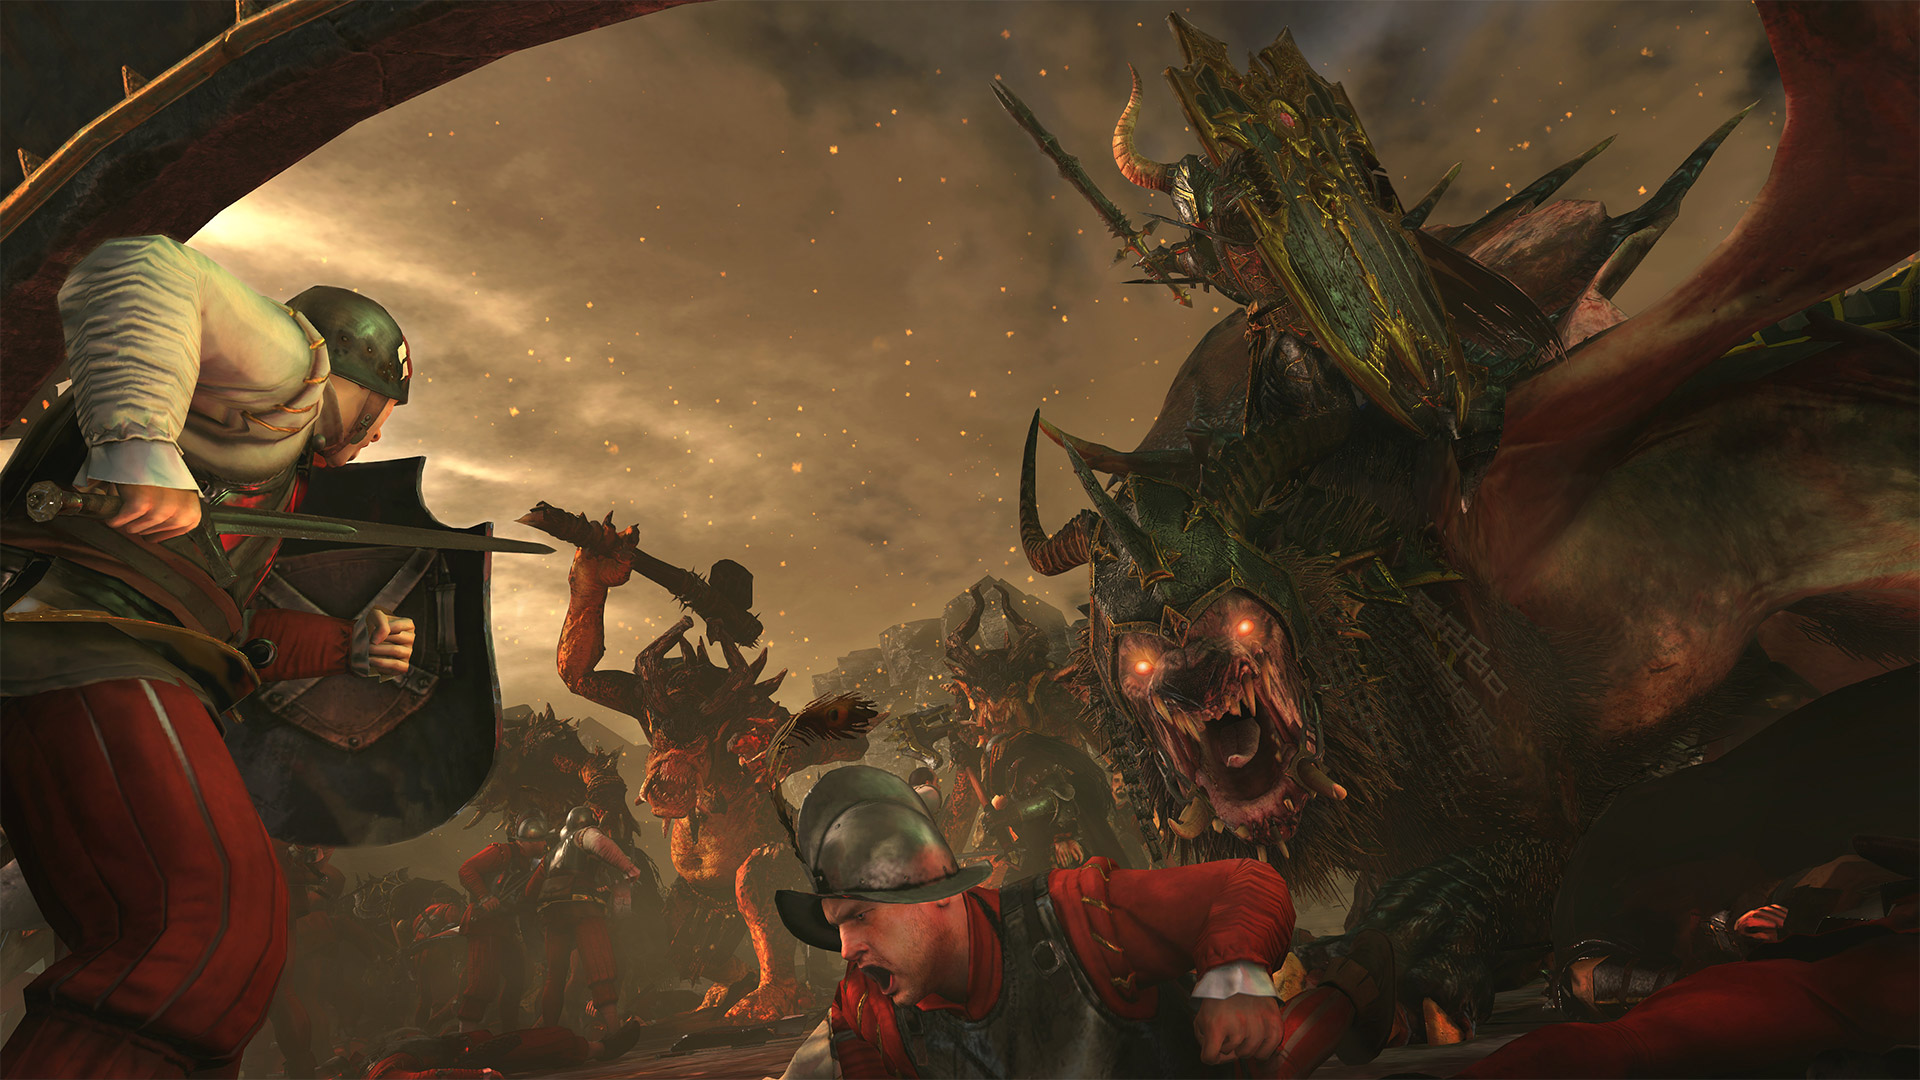 Free Total War: Warhammer Wallpaper in 1920x1080